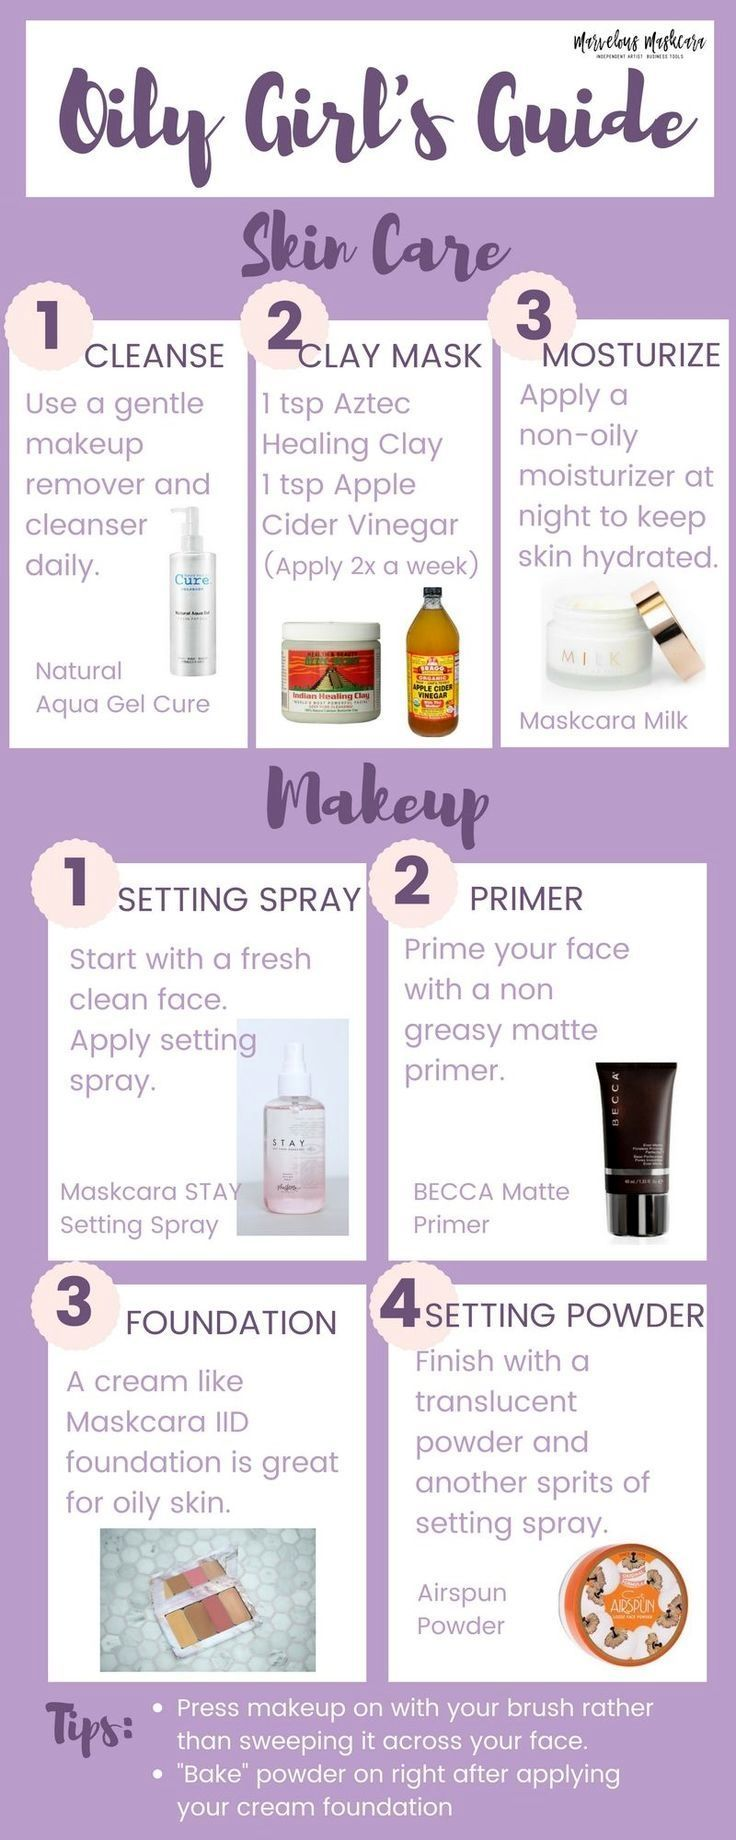 Oily Girls Guide Makeup and Skincare Tips for Women with Oily